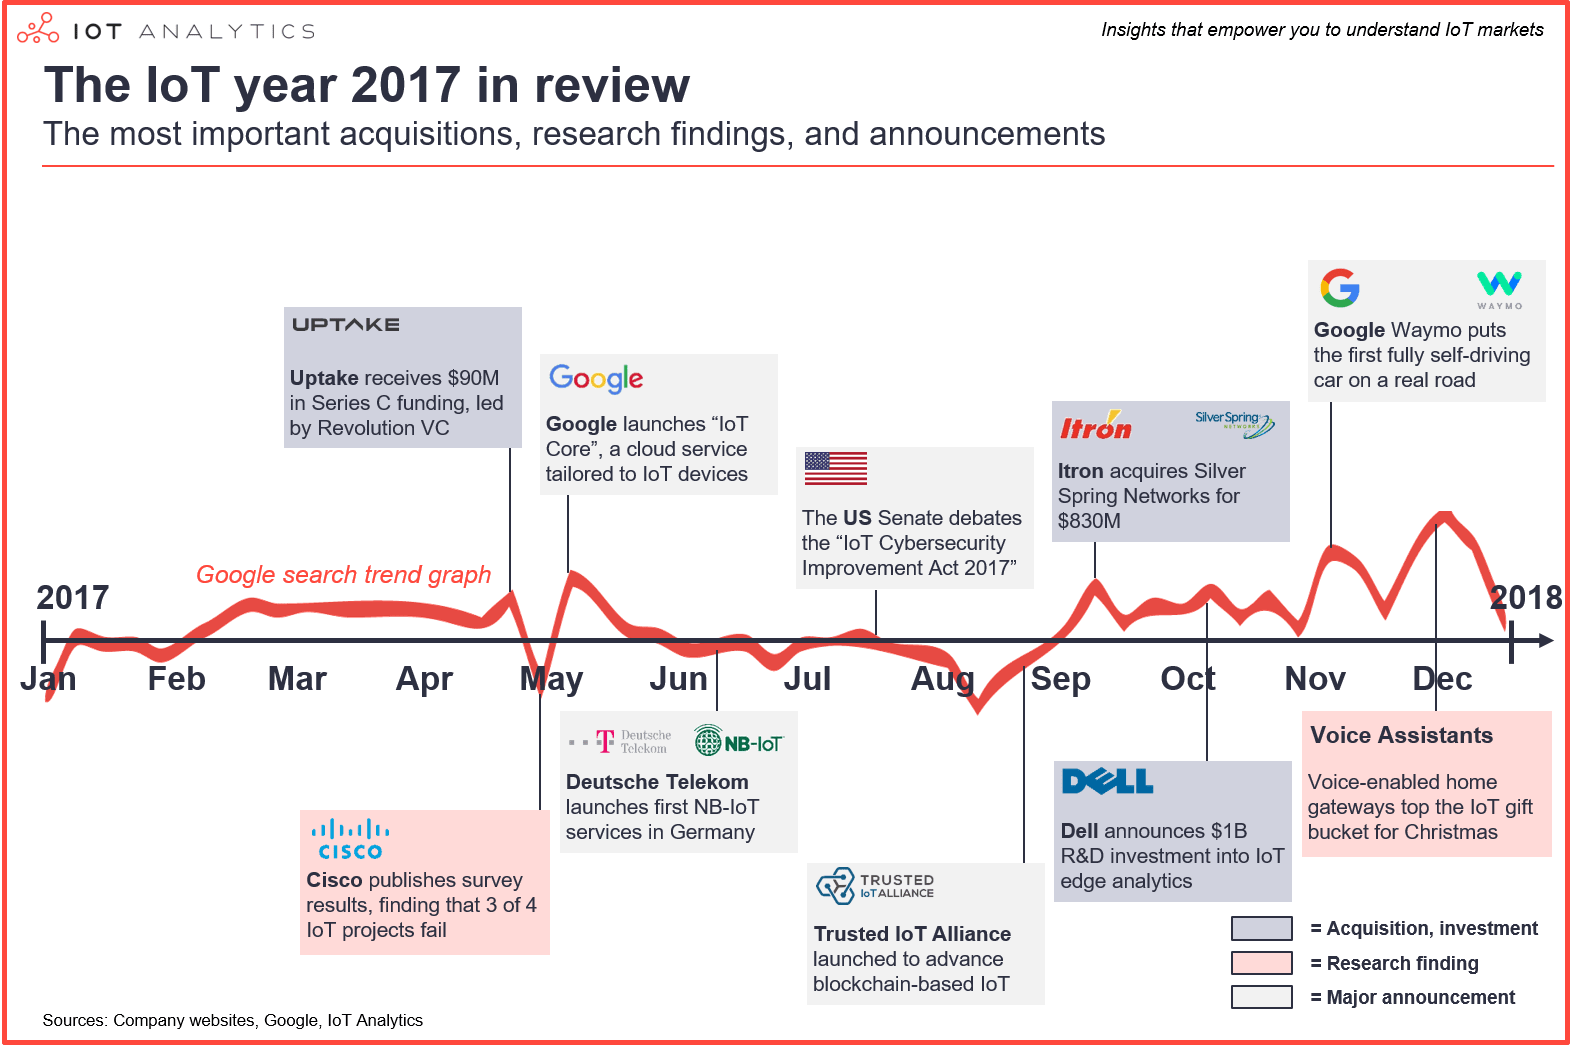 IoT 2017 in review